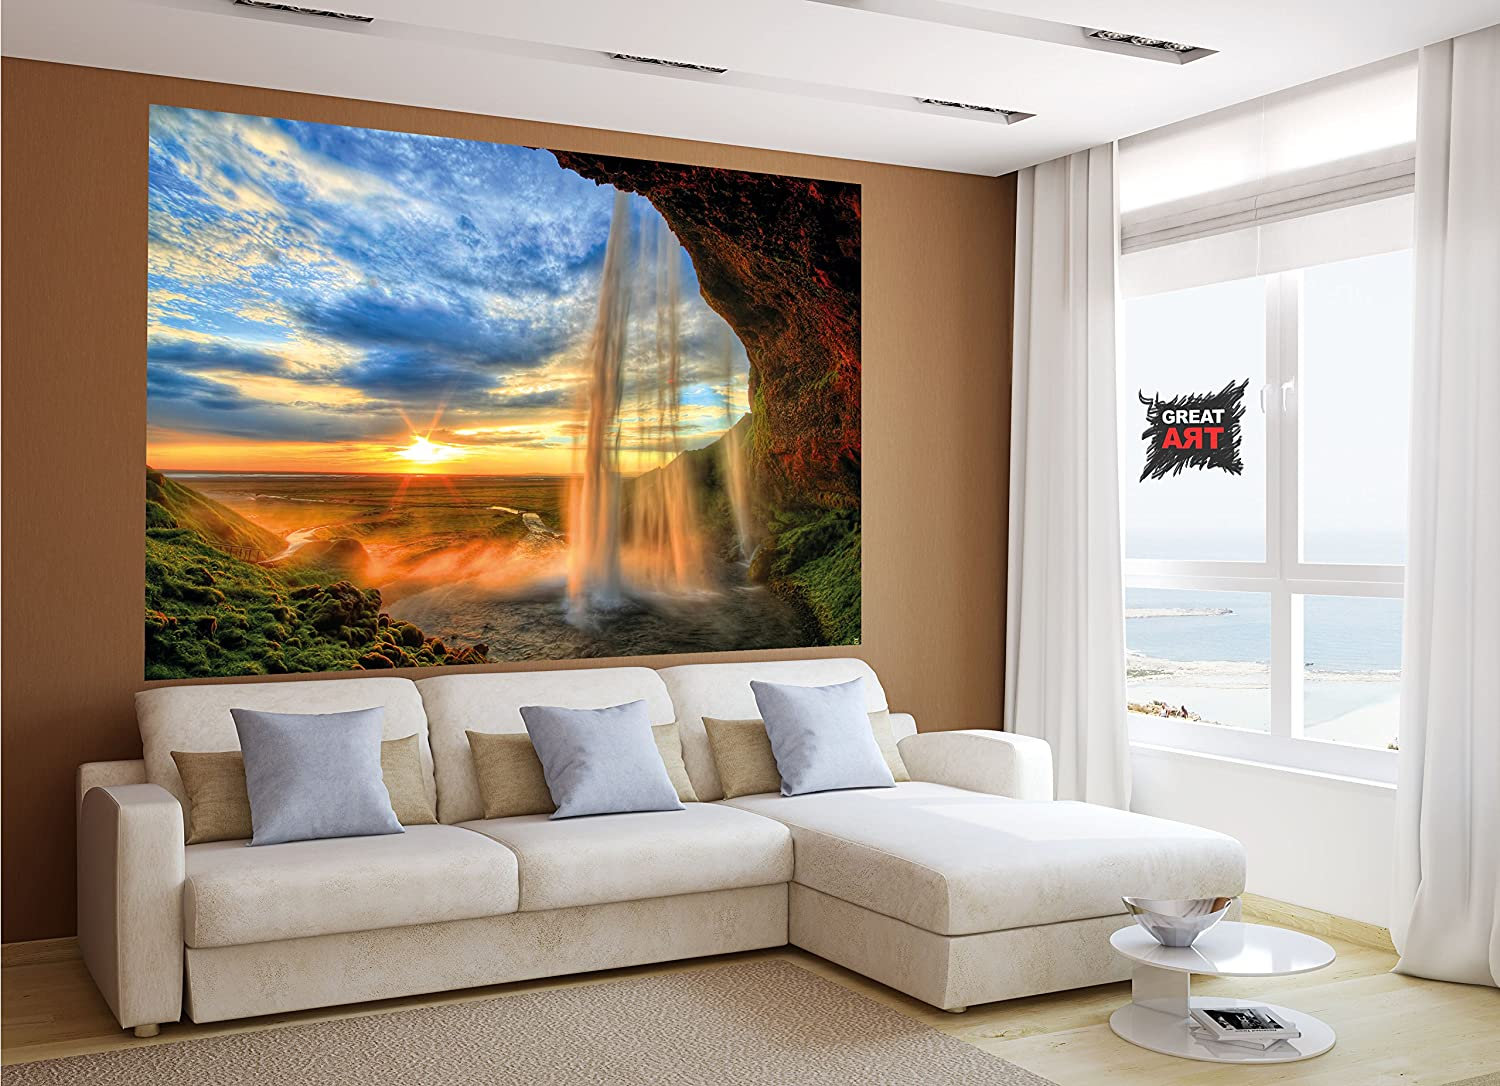 Waterfall at Sunset XXL Mural Waterfall Sunset Poster 82.7 Inch x 55 Inch